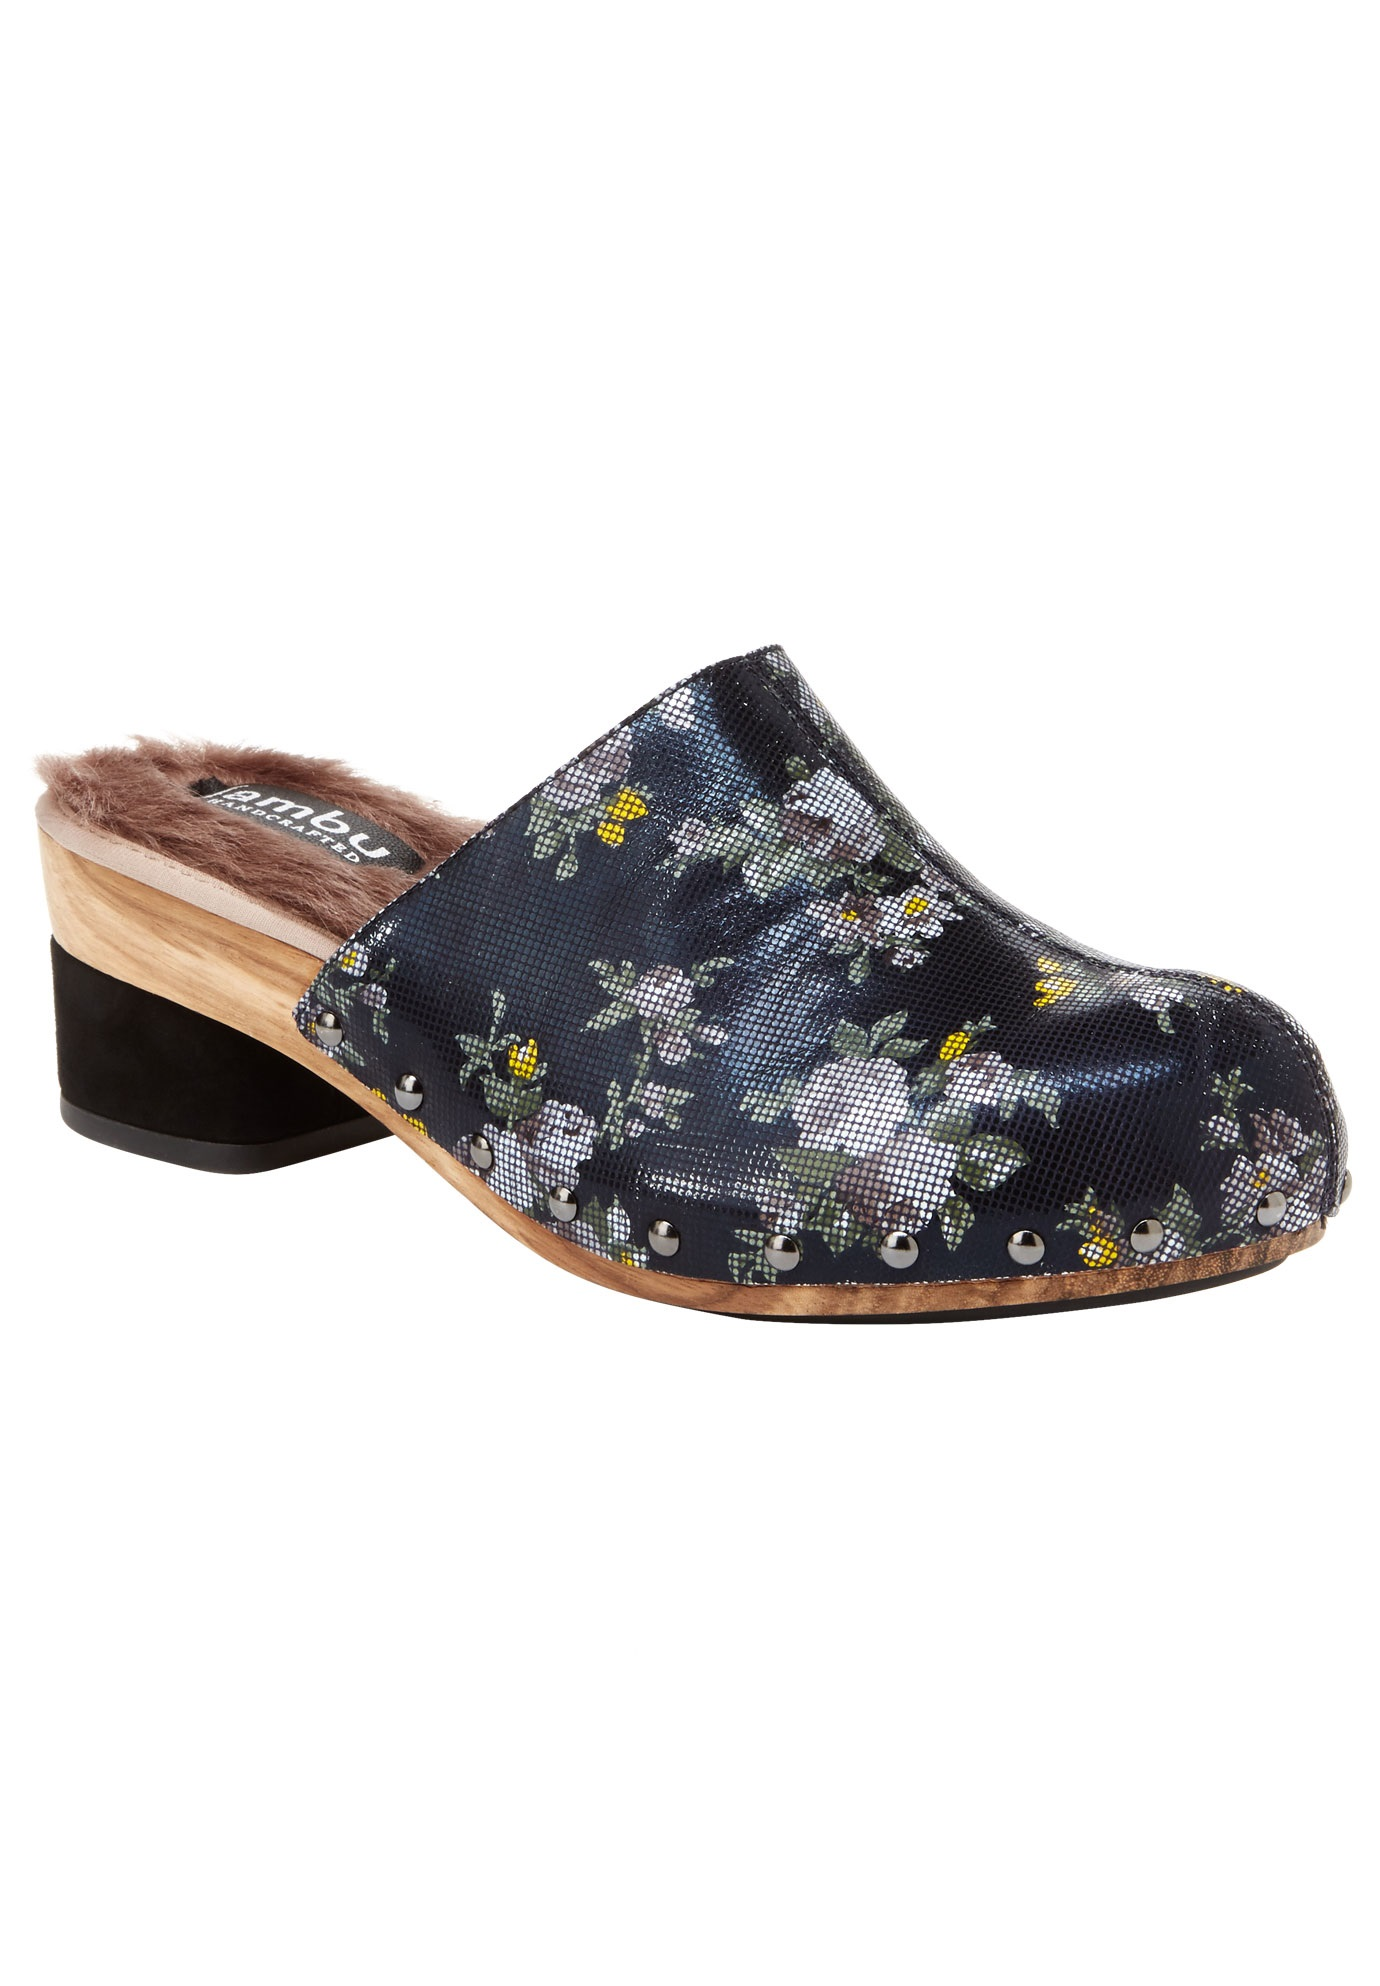 Monaco Clogs by Jambu®,